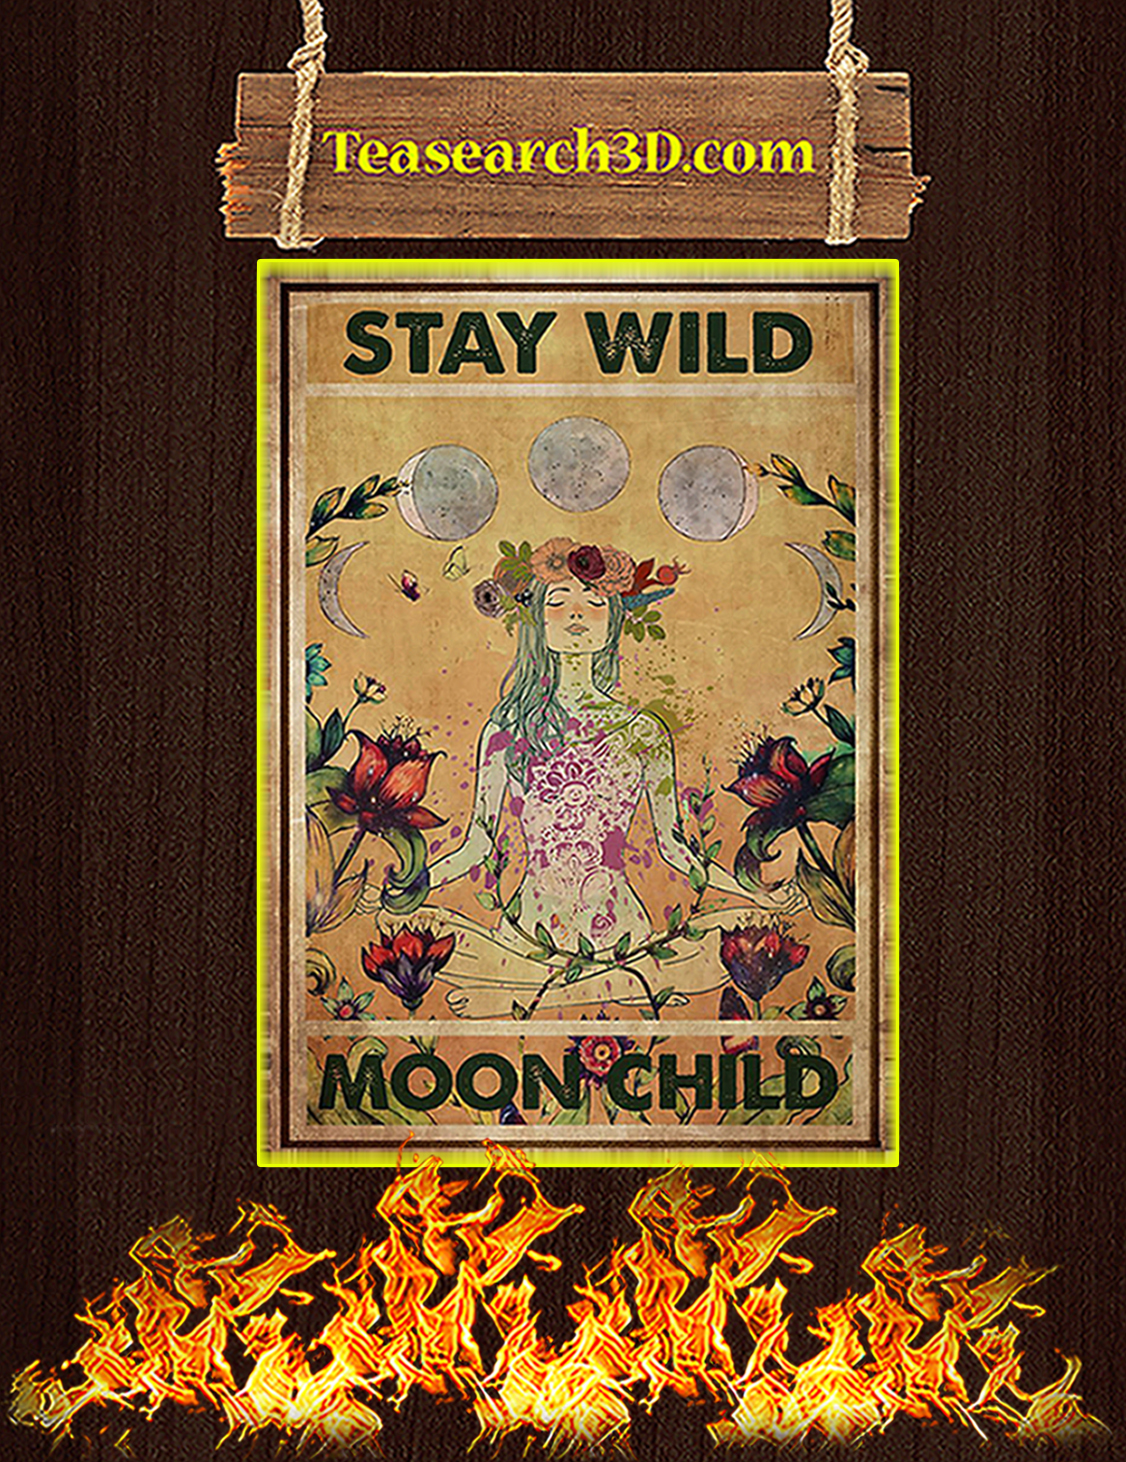 Hippie yoga stay wild moon child poster A3